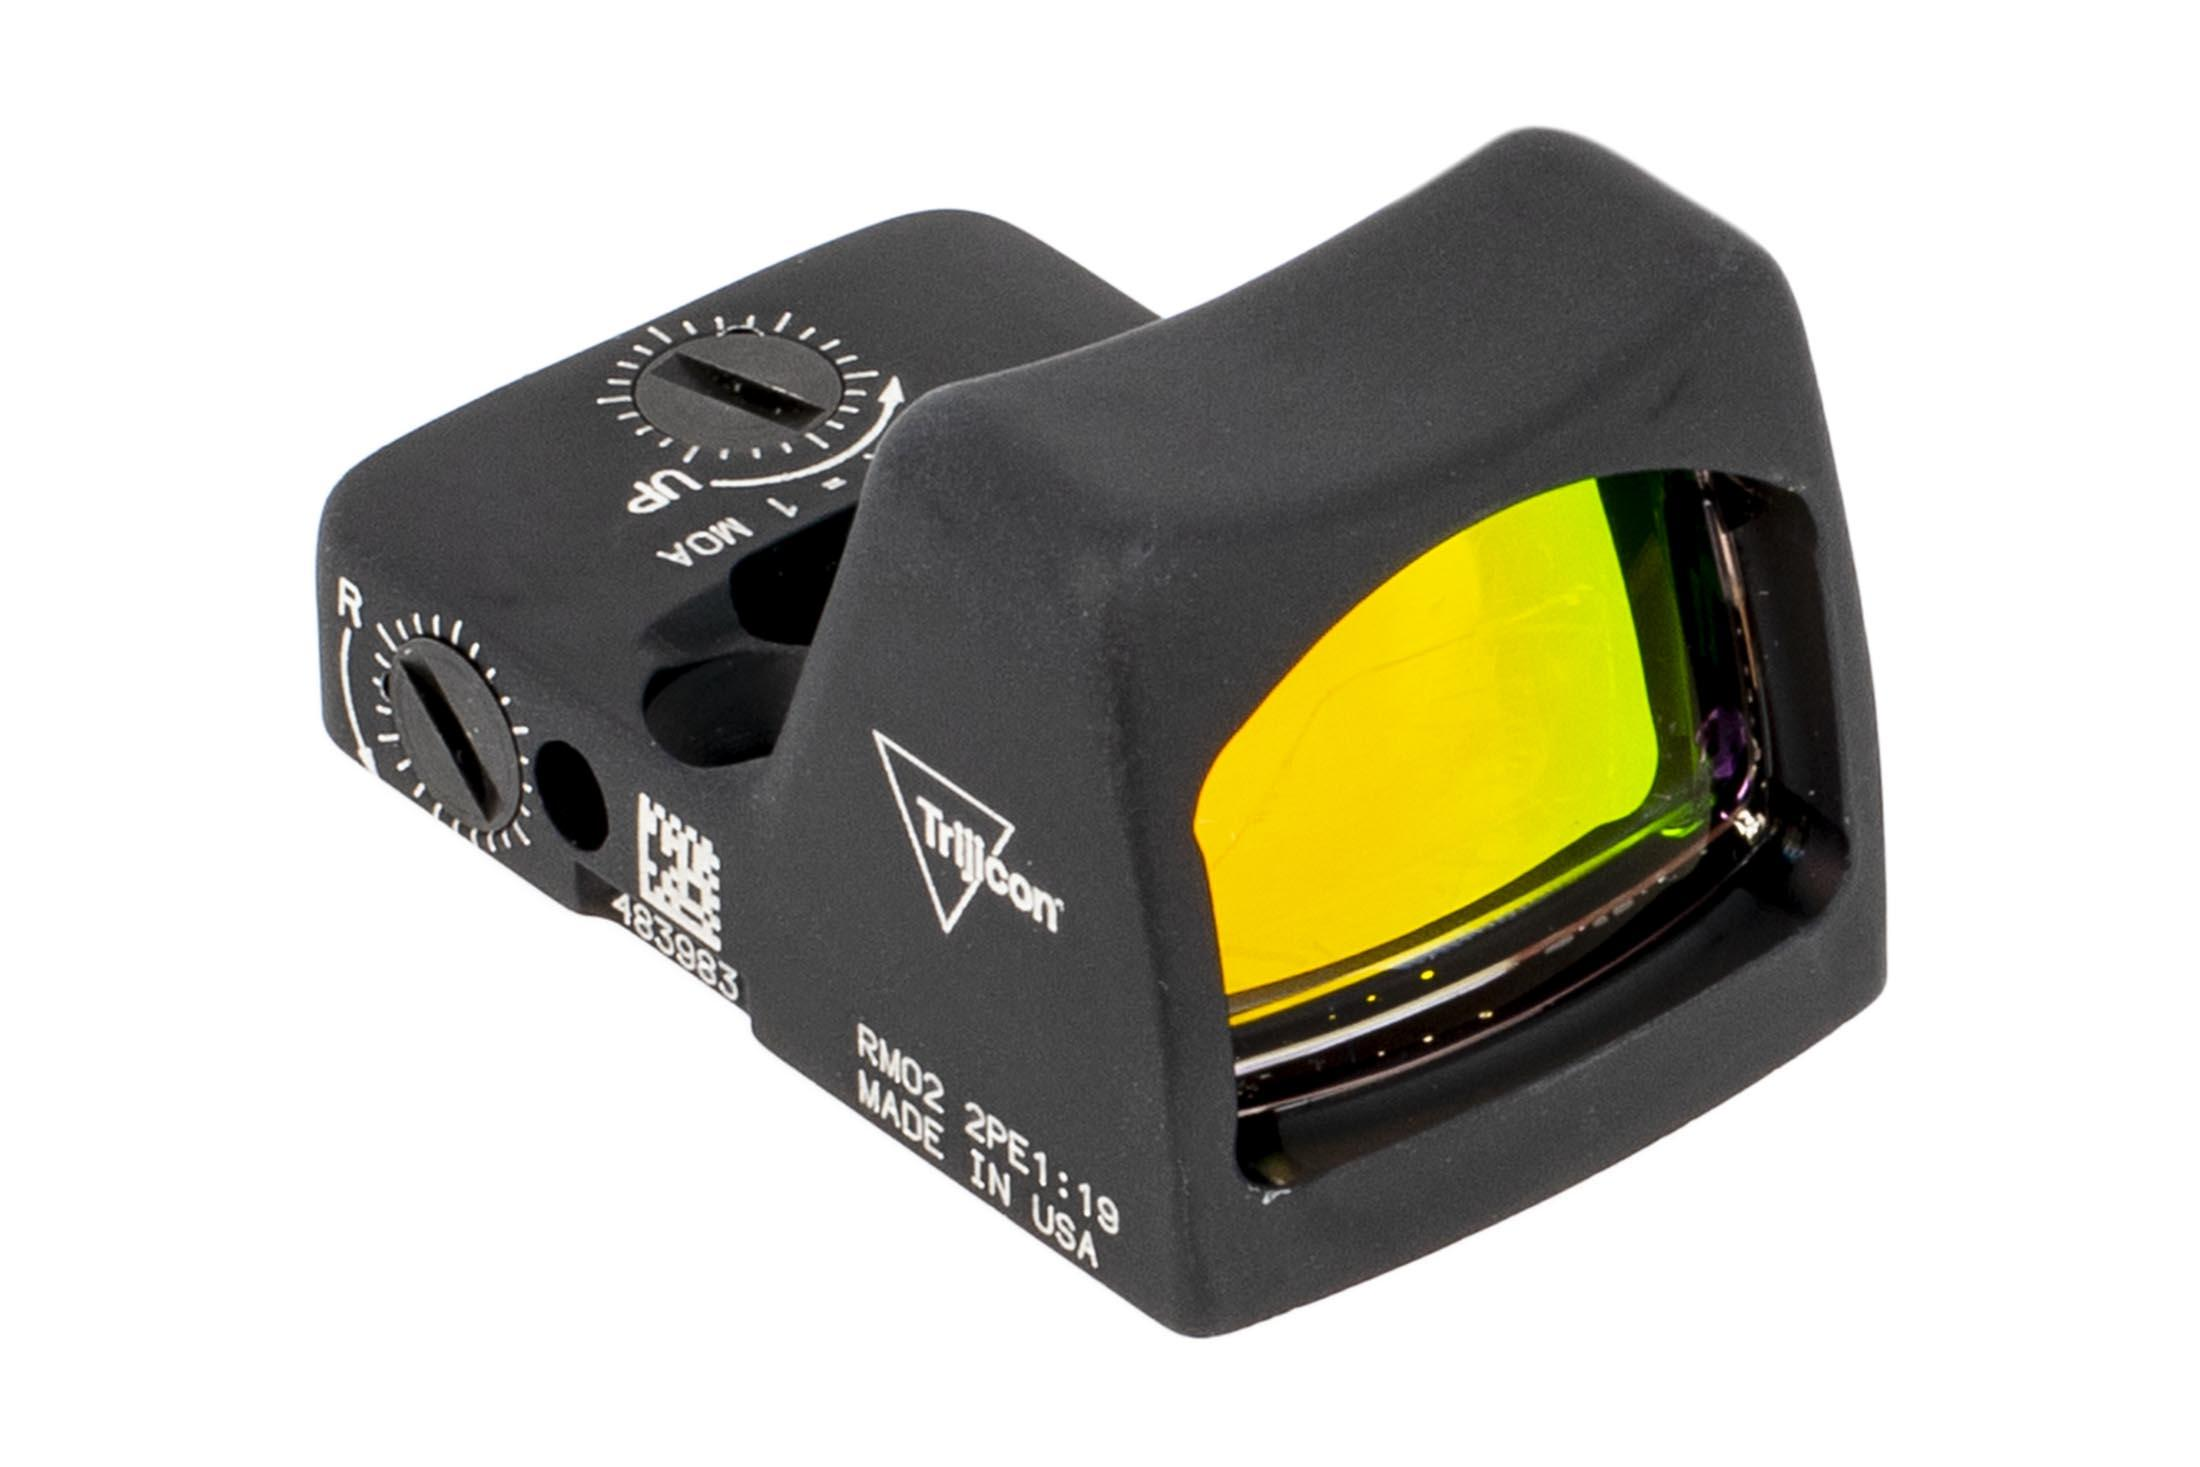 Trijicon RMR Type 2 Adjustable LED Reflex sight features a 6.5 MOA reticle and black anodized finish